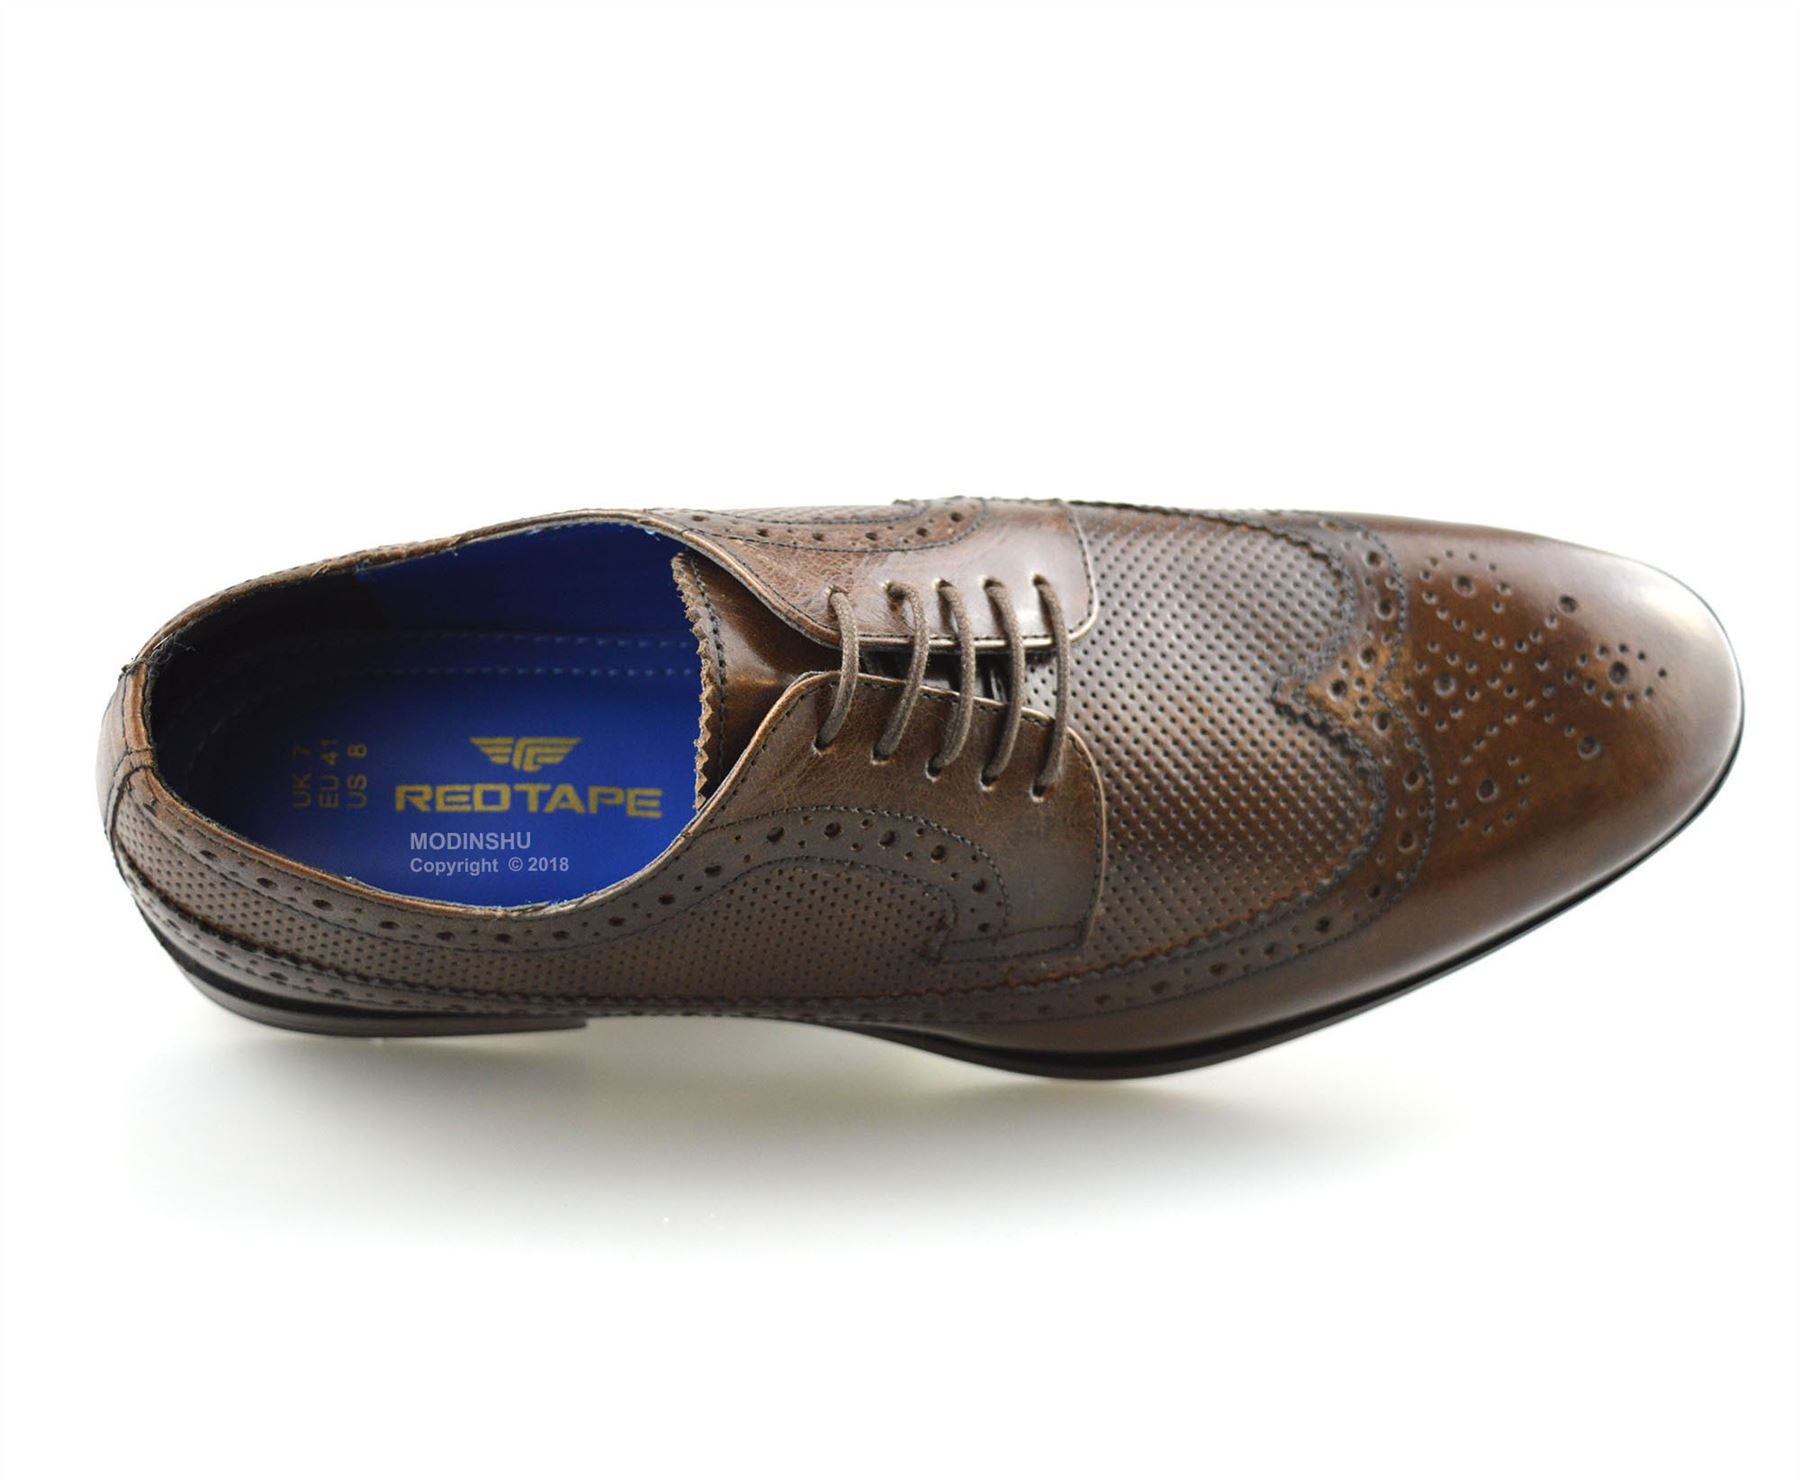 Mens-Leather-Brogues-Smart-Casual-Formal-Office-Lace-Up-Oxford-Brogue-Shoes-Size thumbnail 22